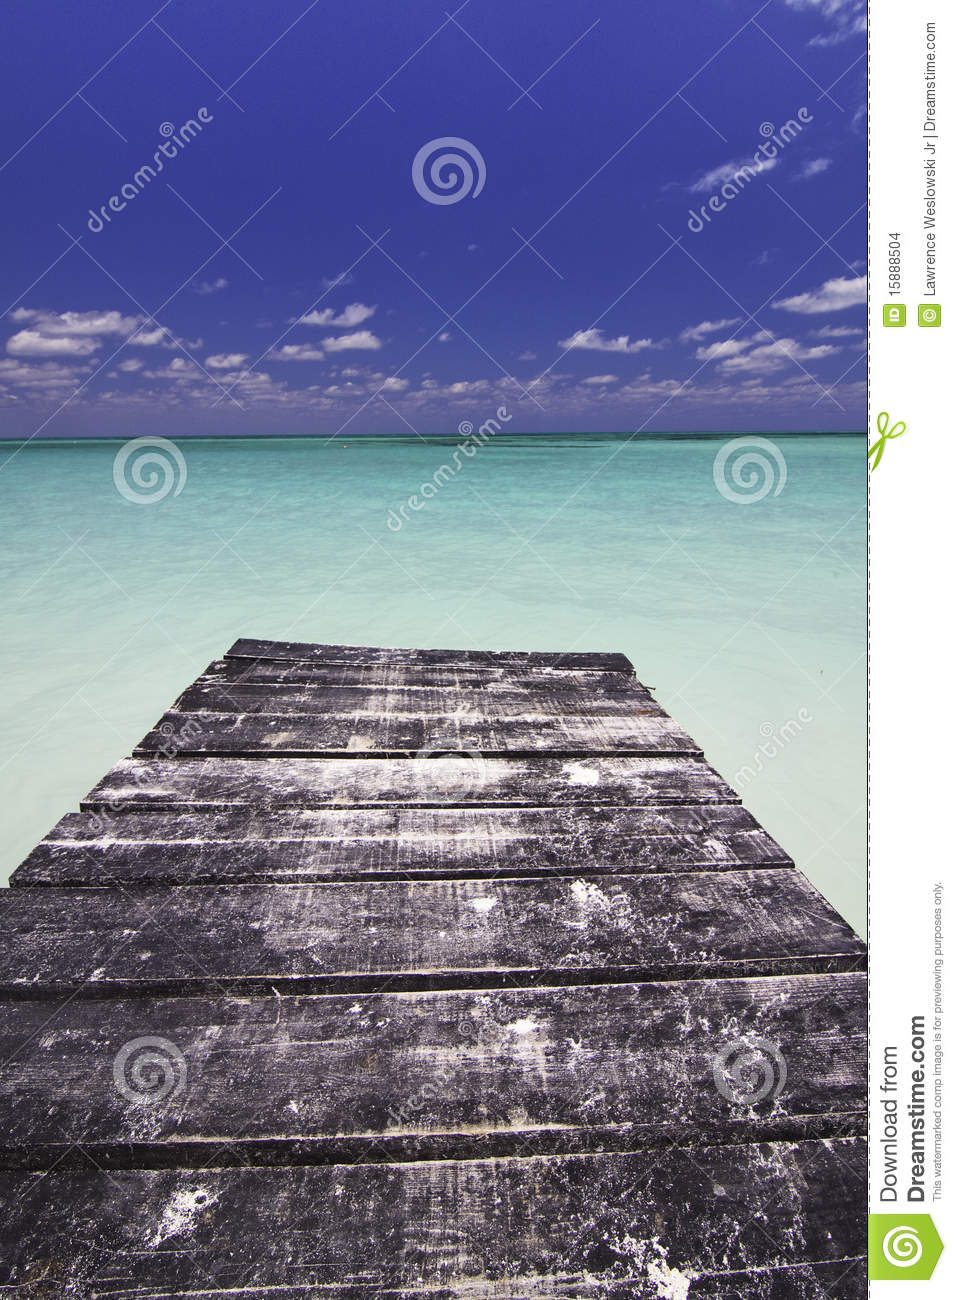 End of the Dock in Paradise